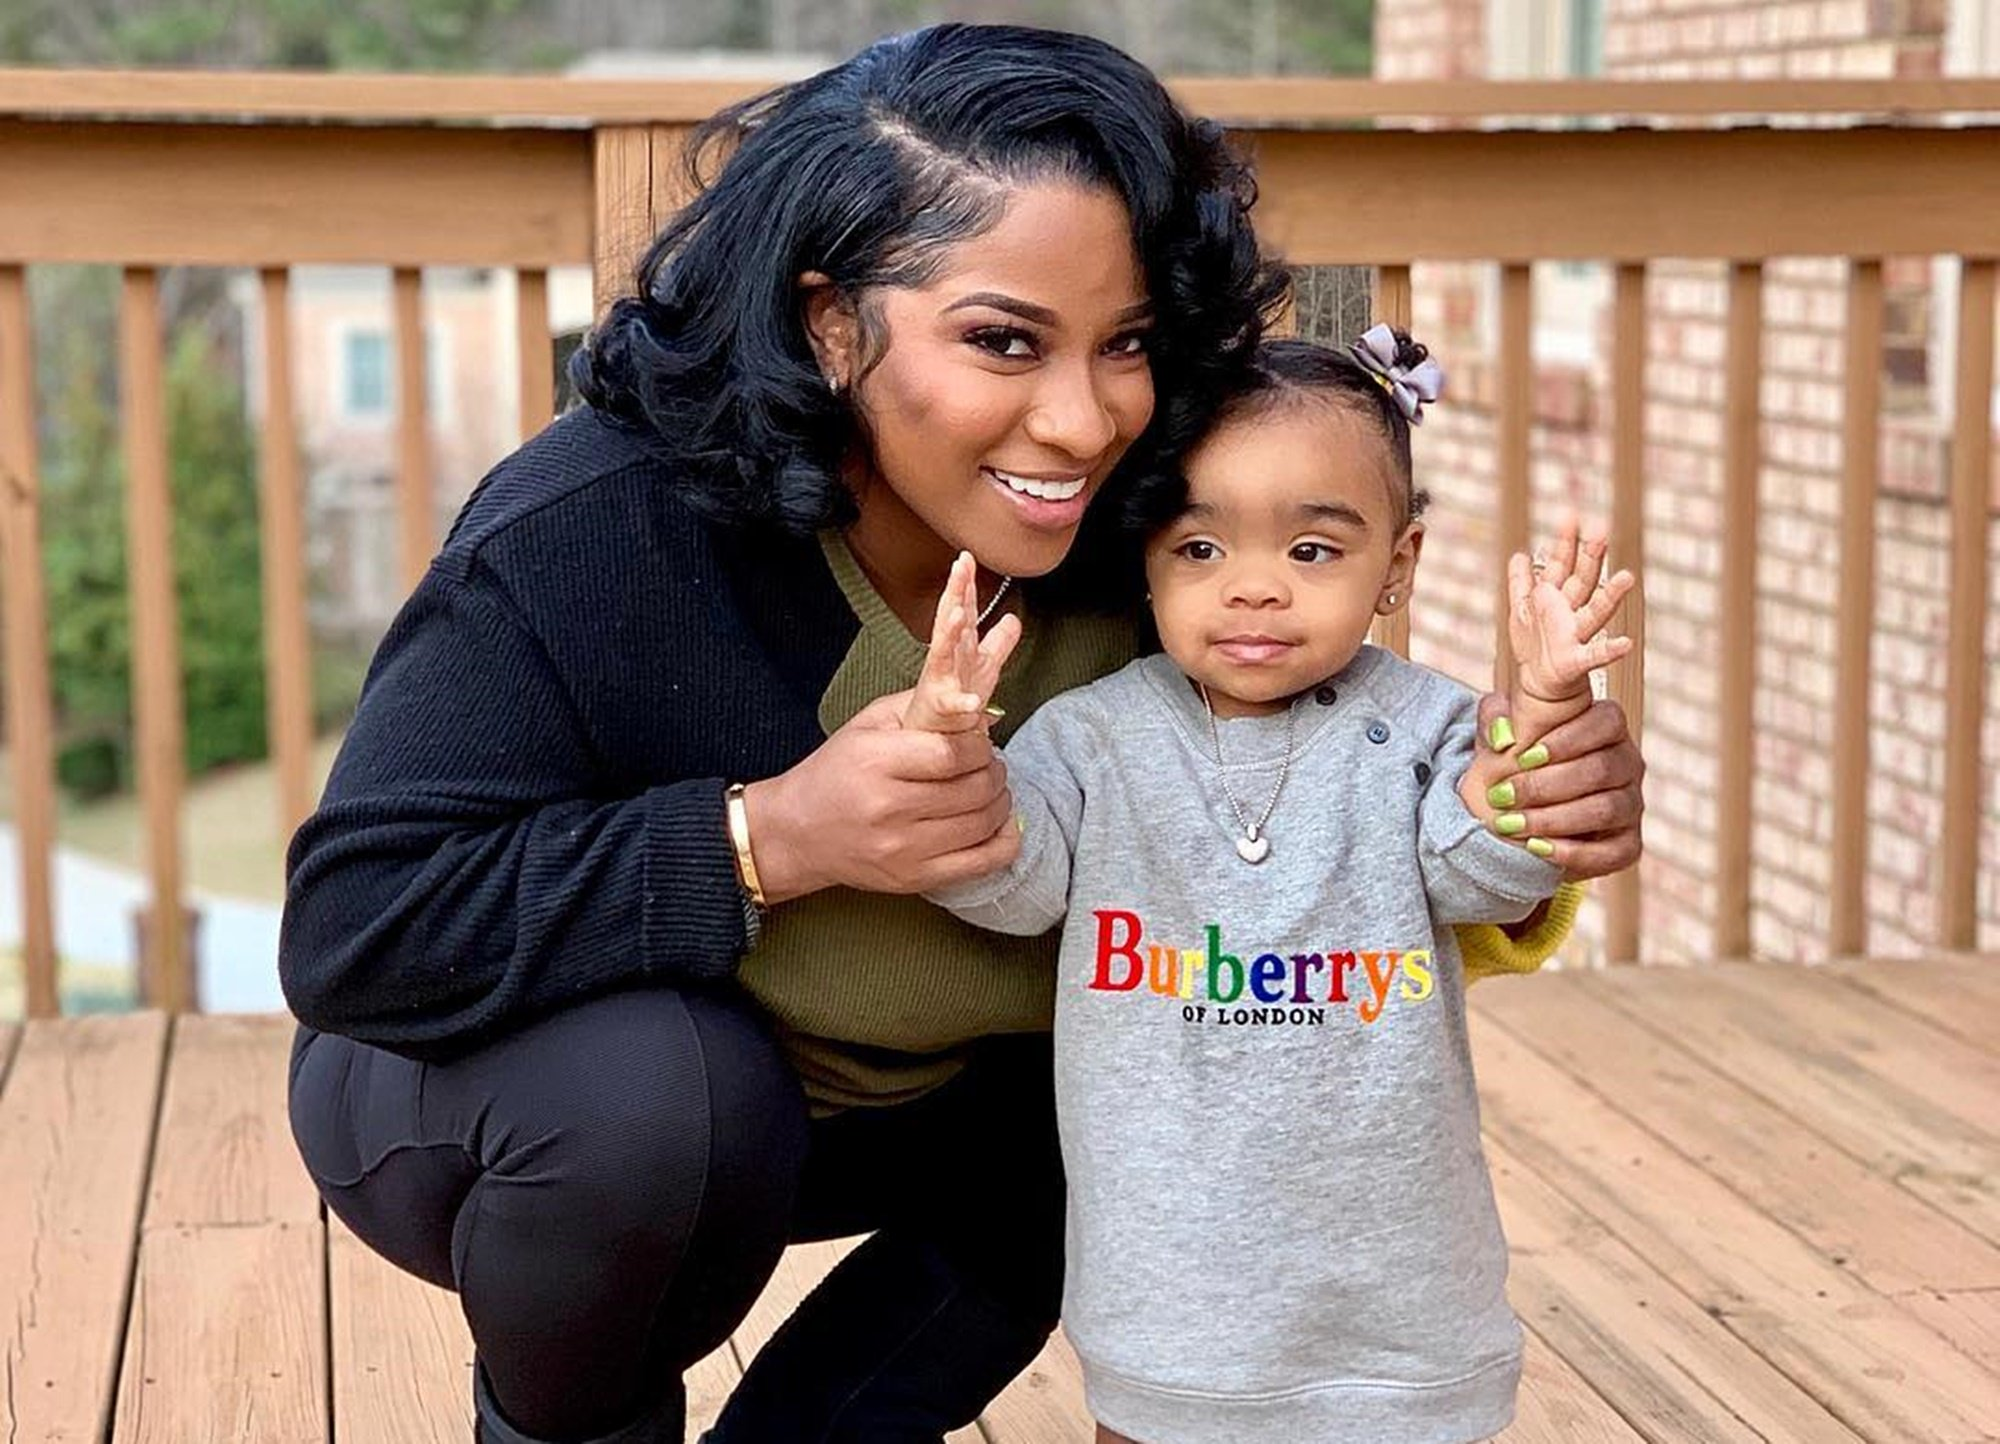 toya-wrights-fans-freak-out-seeing-her-rock-climbing-see-her-photos